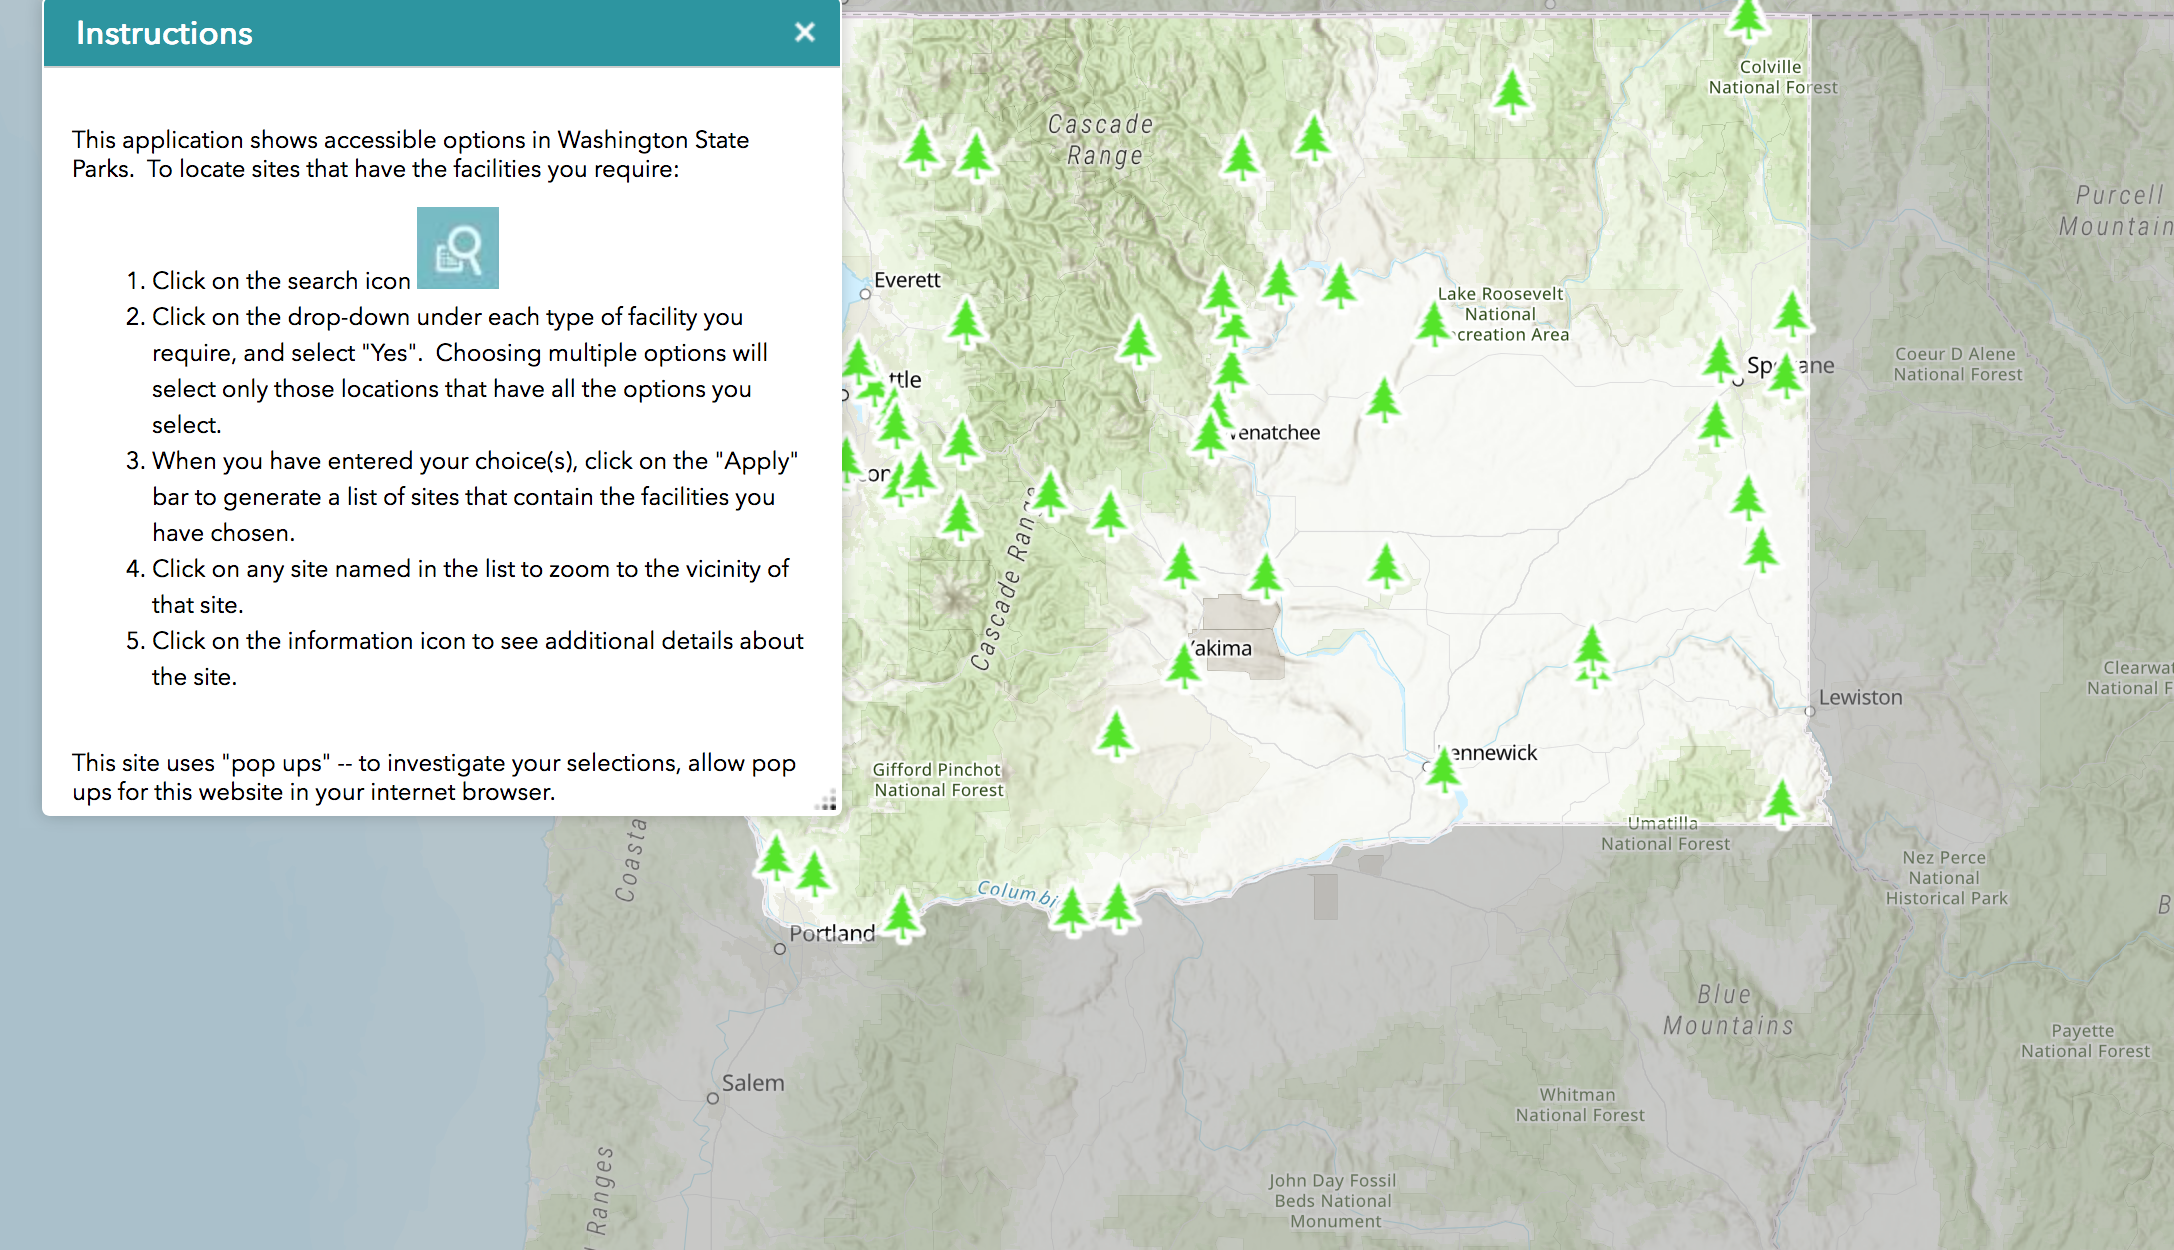 State Parks releases ADA recreation map   The Spokesman-Review